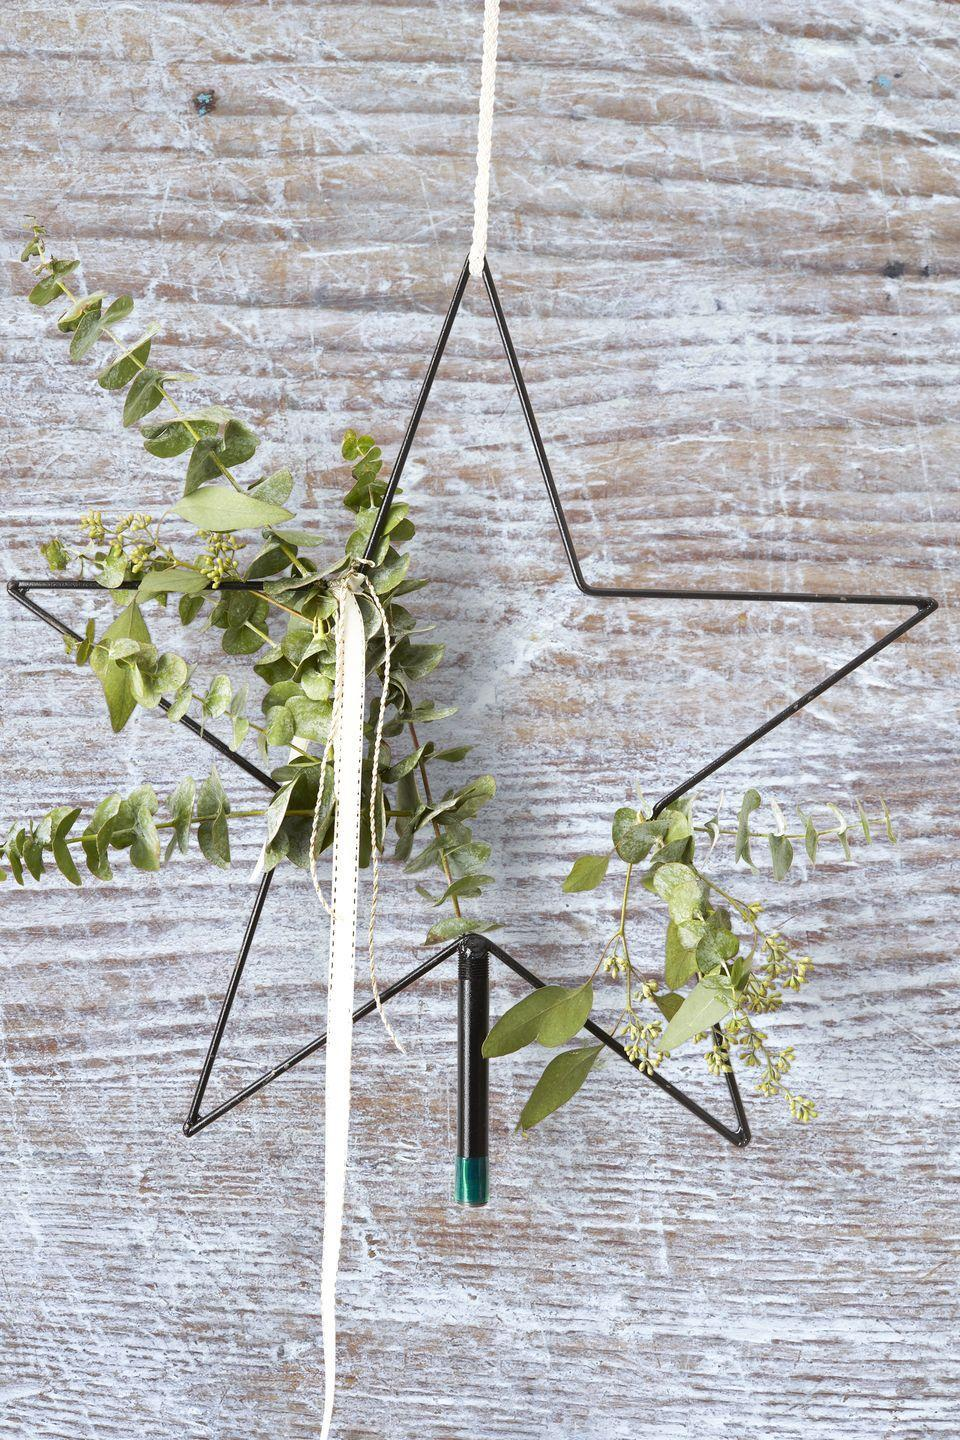 "<p>Spruce up a wire tree topper with eucalyptus, green sprigs, and neutral ribbon for an instant farmhouse feel. </p><p><strong>RELATED: </strong><a href=""https://www.goodhousekeeping.com/holidays/christmas-ideas/g2721/christmas-tree-toppers/"" rel=""nofollow noopener"" target=""_blank"" data-ylk=""slk:Unique Christmas Tree Toppers to Match Any Holiday Theme"" class=""link rapid-noclick-resp"">Unique Christmas Tree Toppers to Match Any Holiday Theme</a></p>"